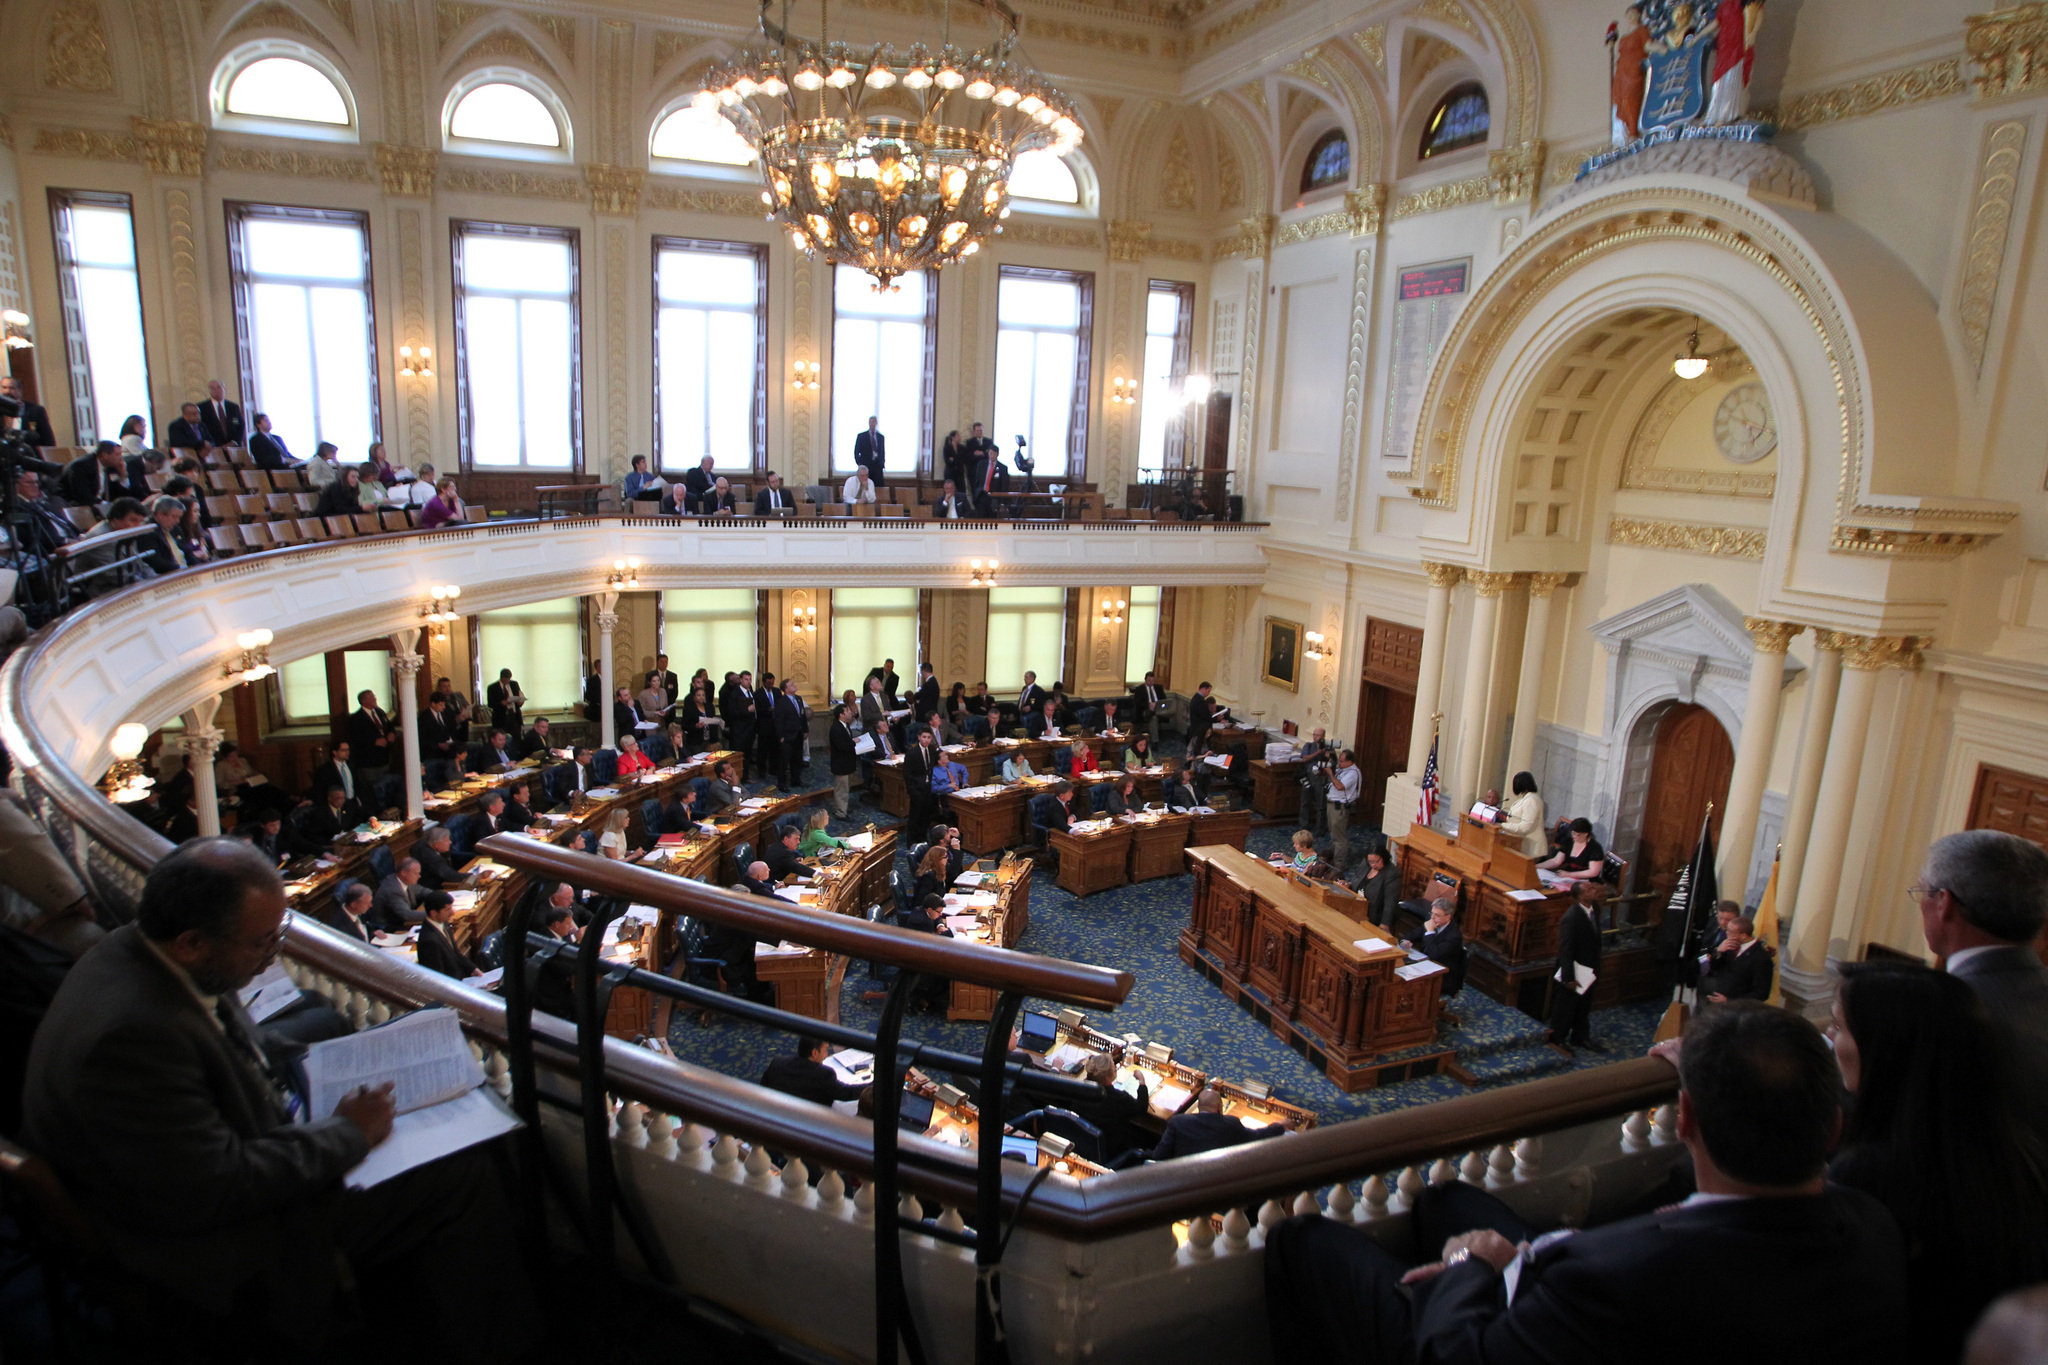 nj-assembly-public-employeesjpg-522a5fe4ed5e295a.jpg